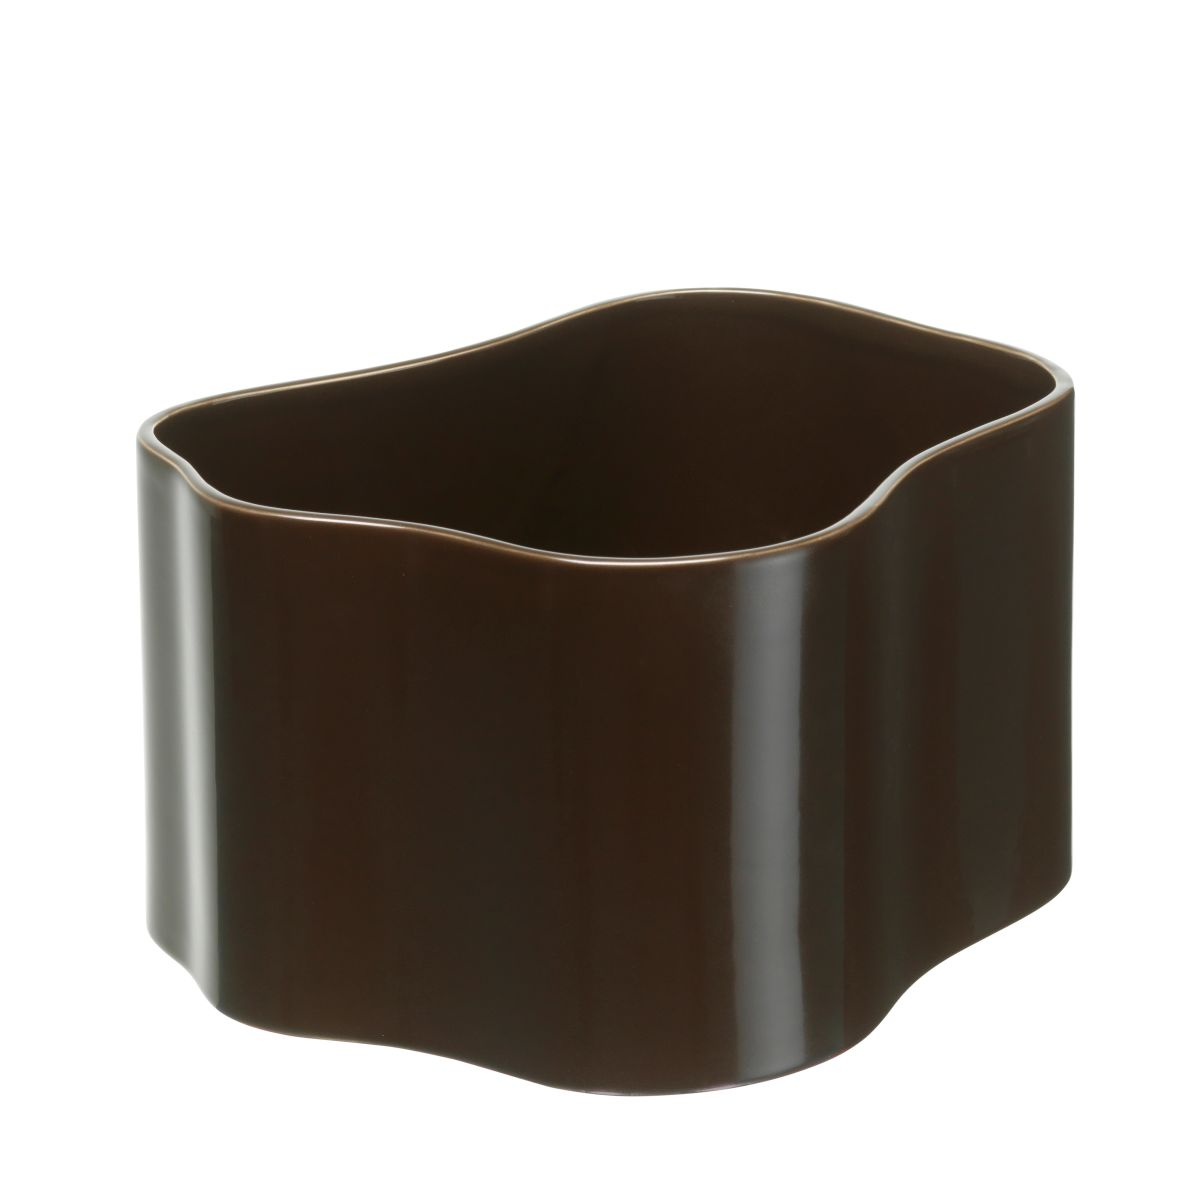 Plant pot shape B, size M, Dark brown gloss_F